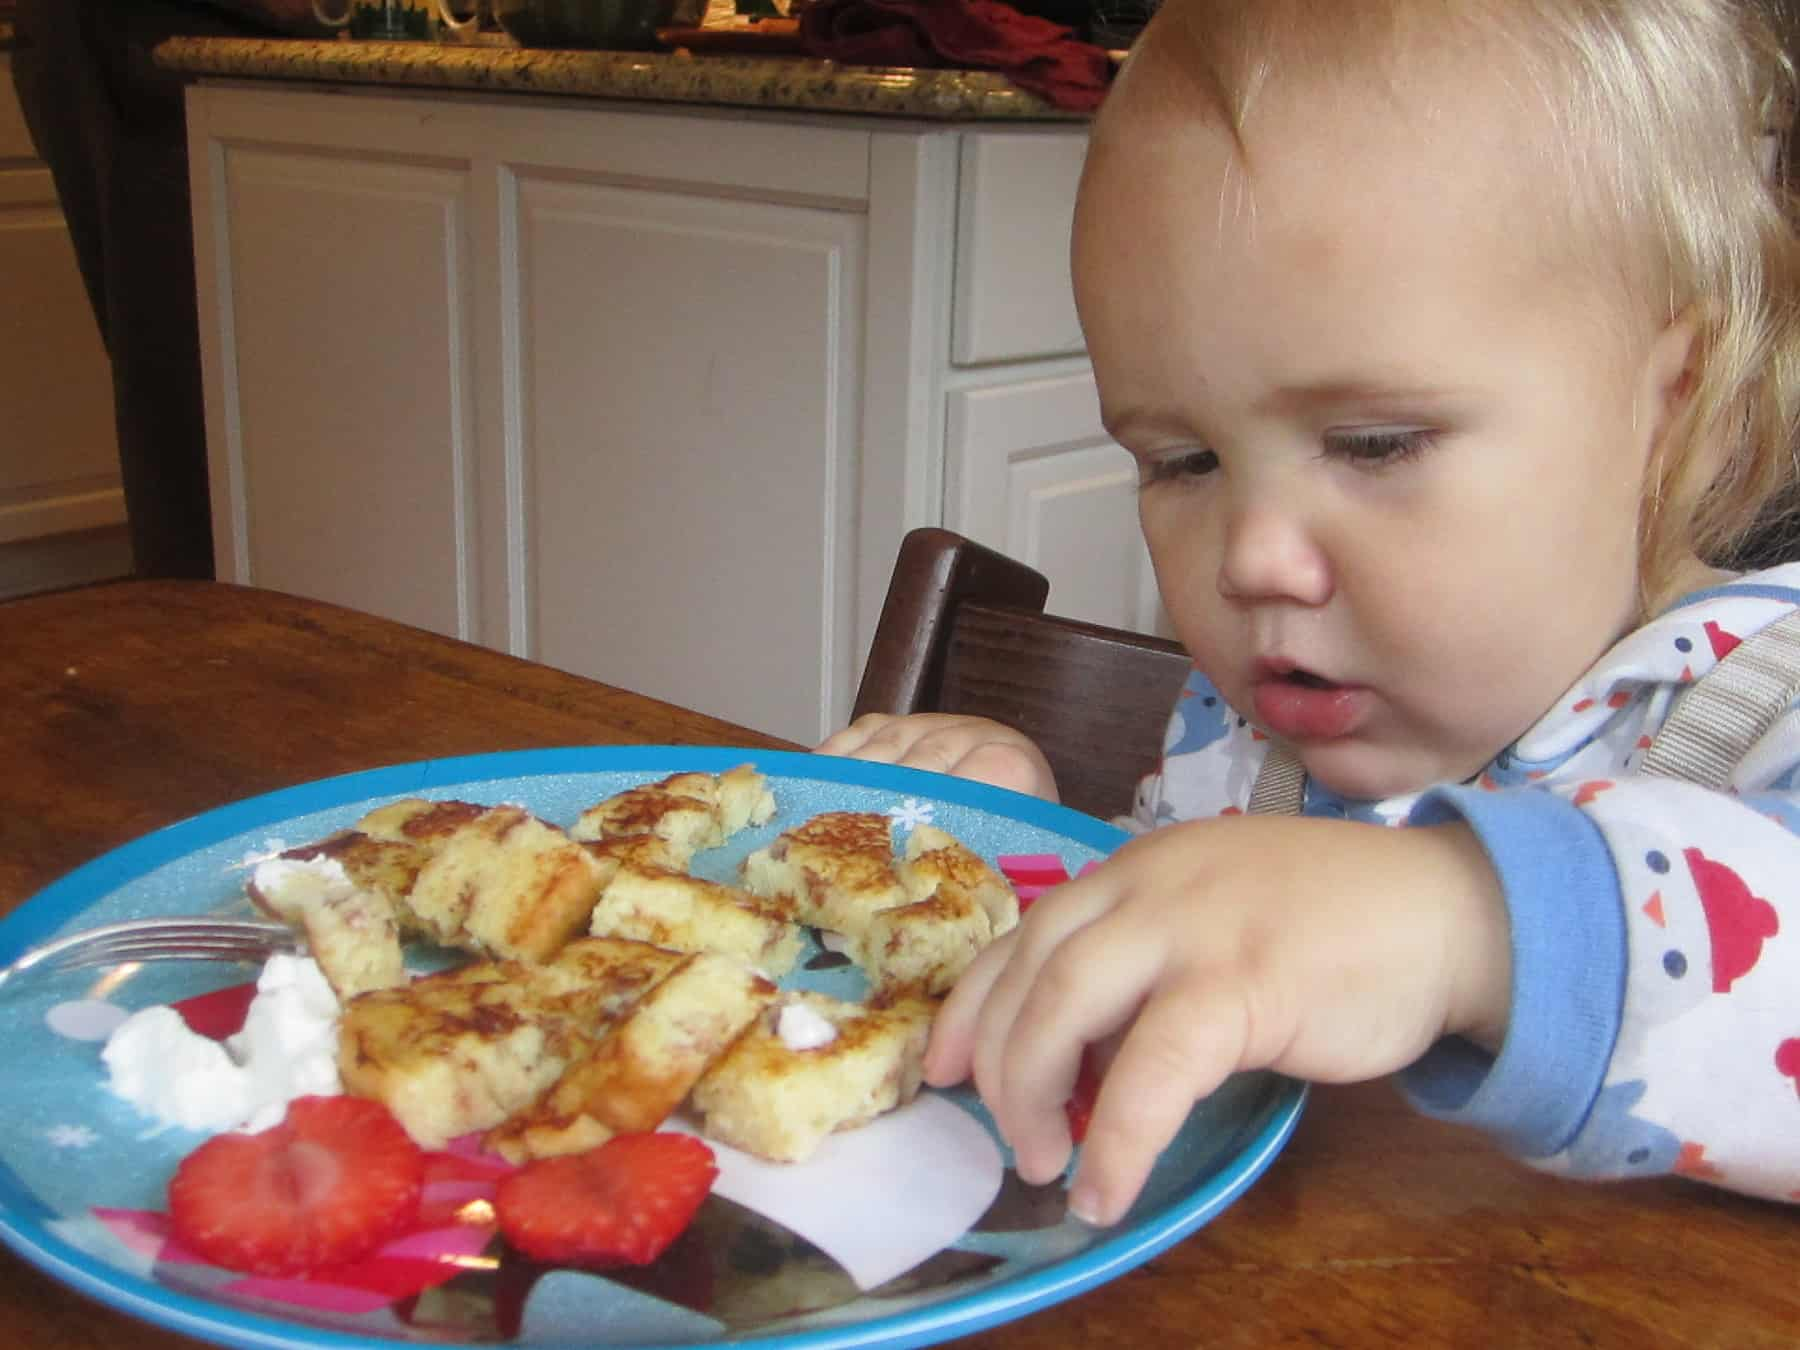 baby eating french toast